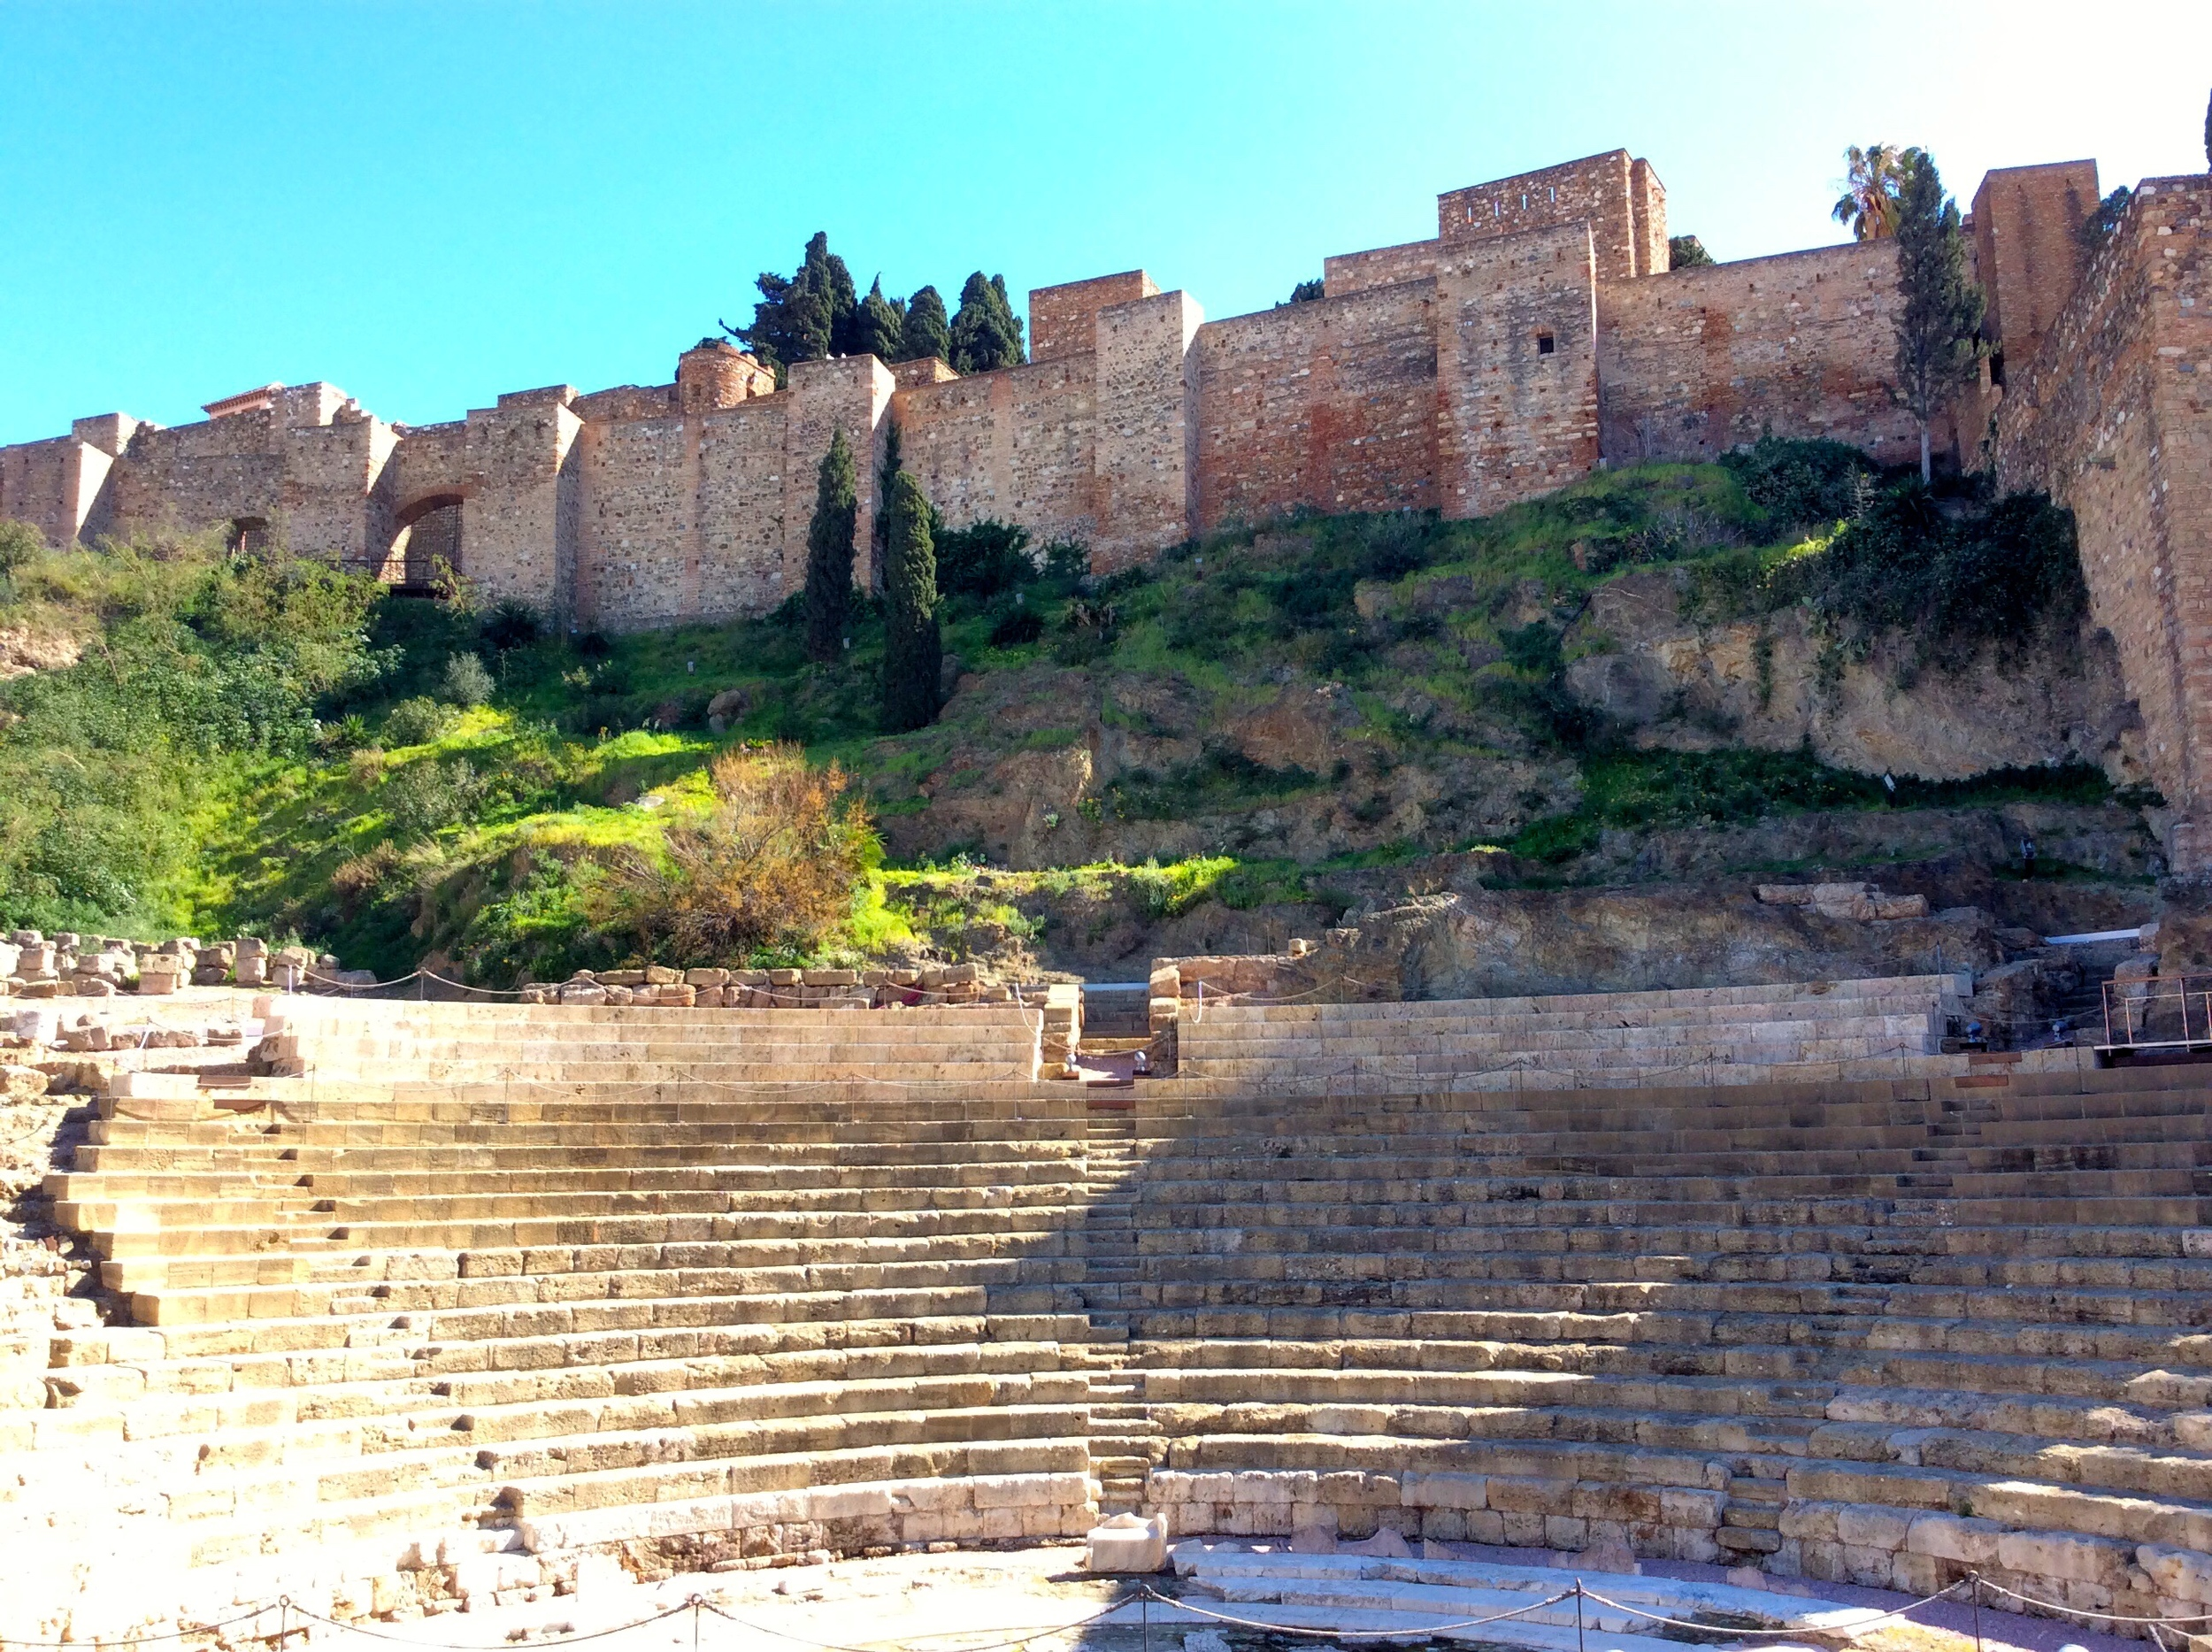 The Roman theatre, with the Alcazaba above it